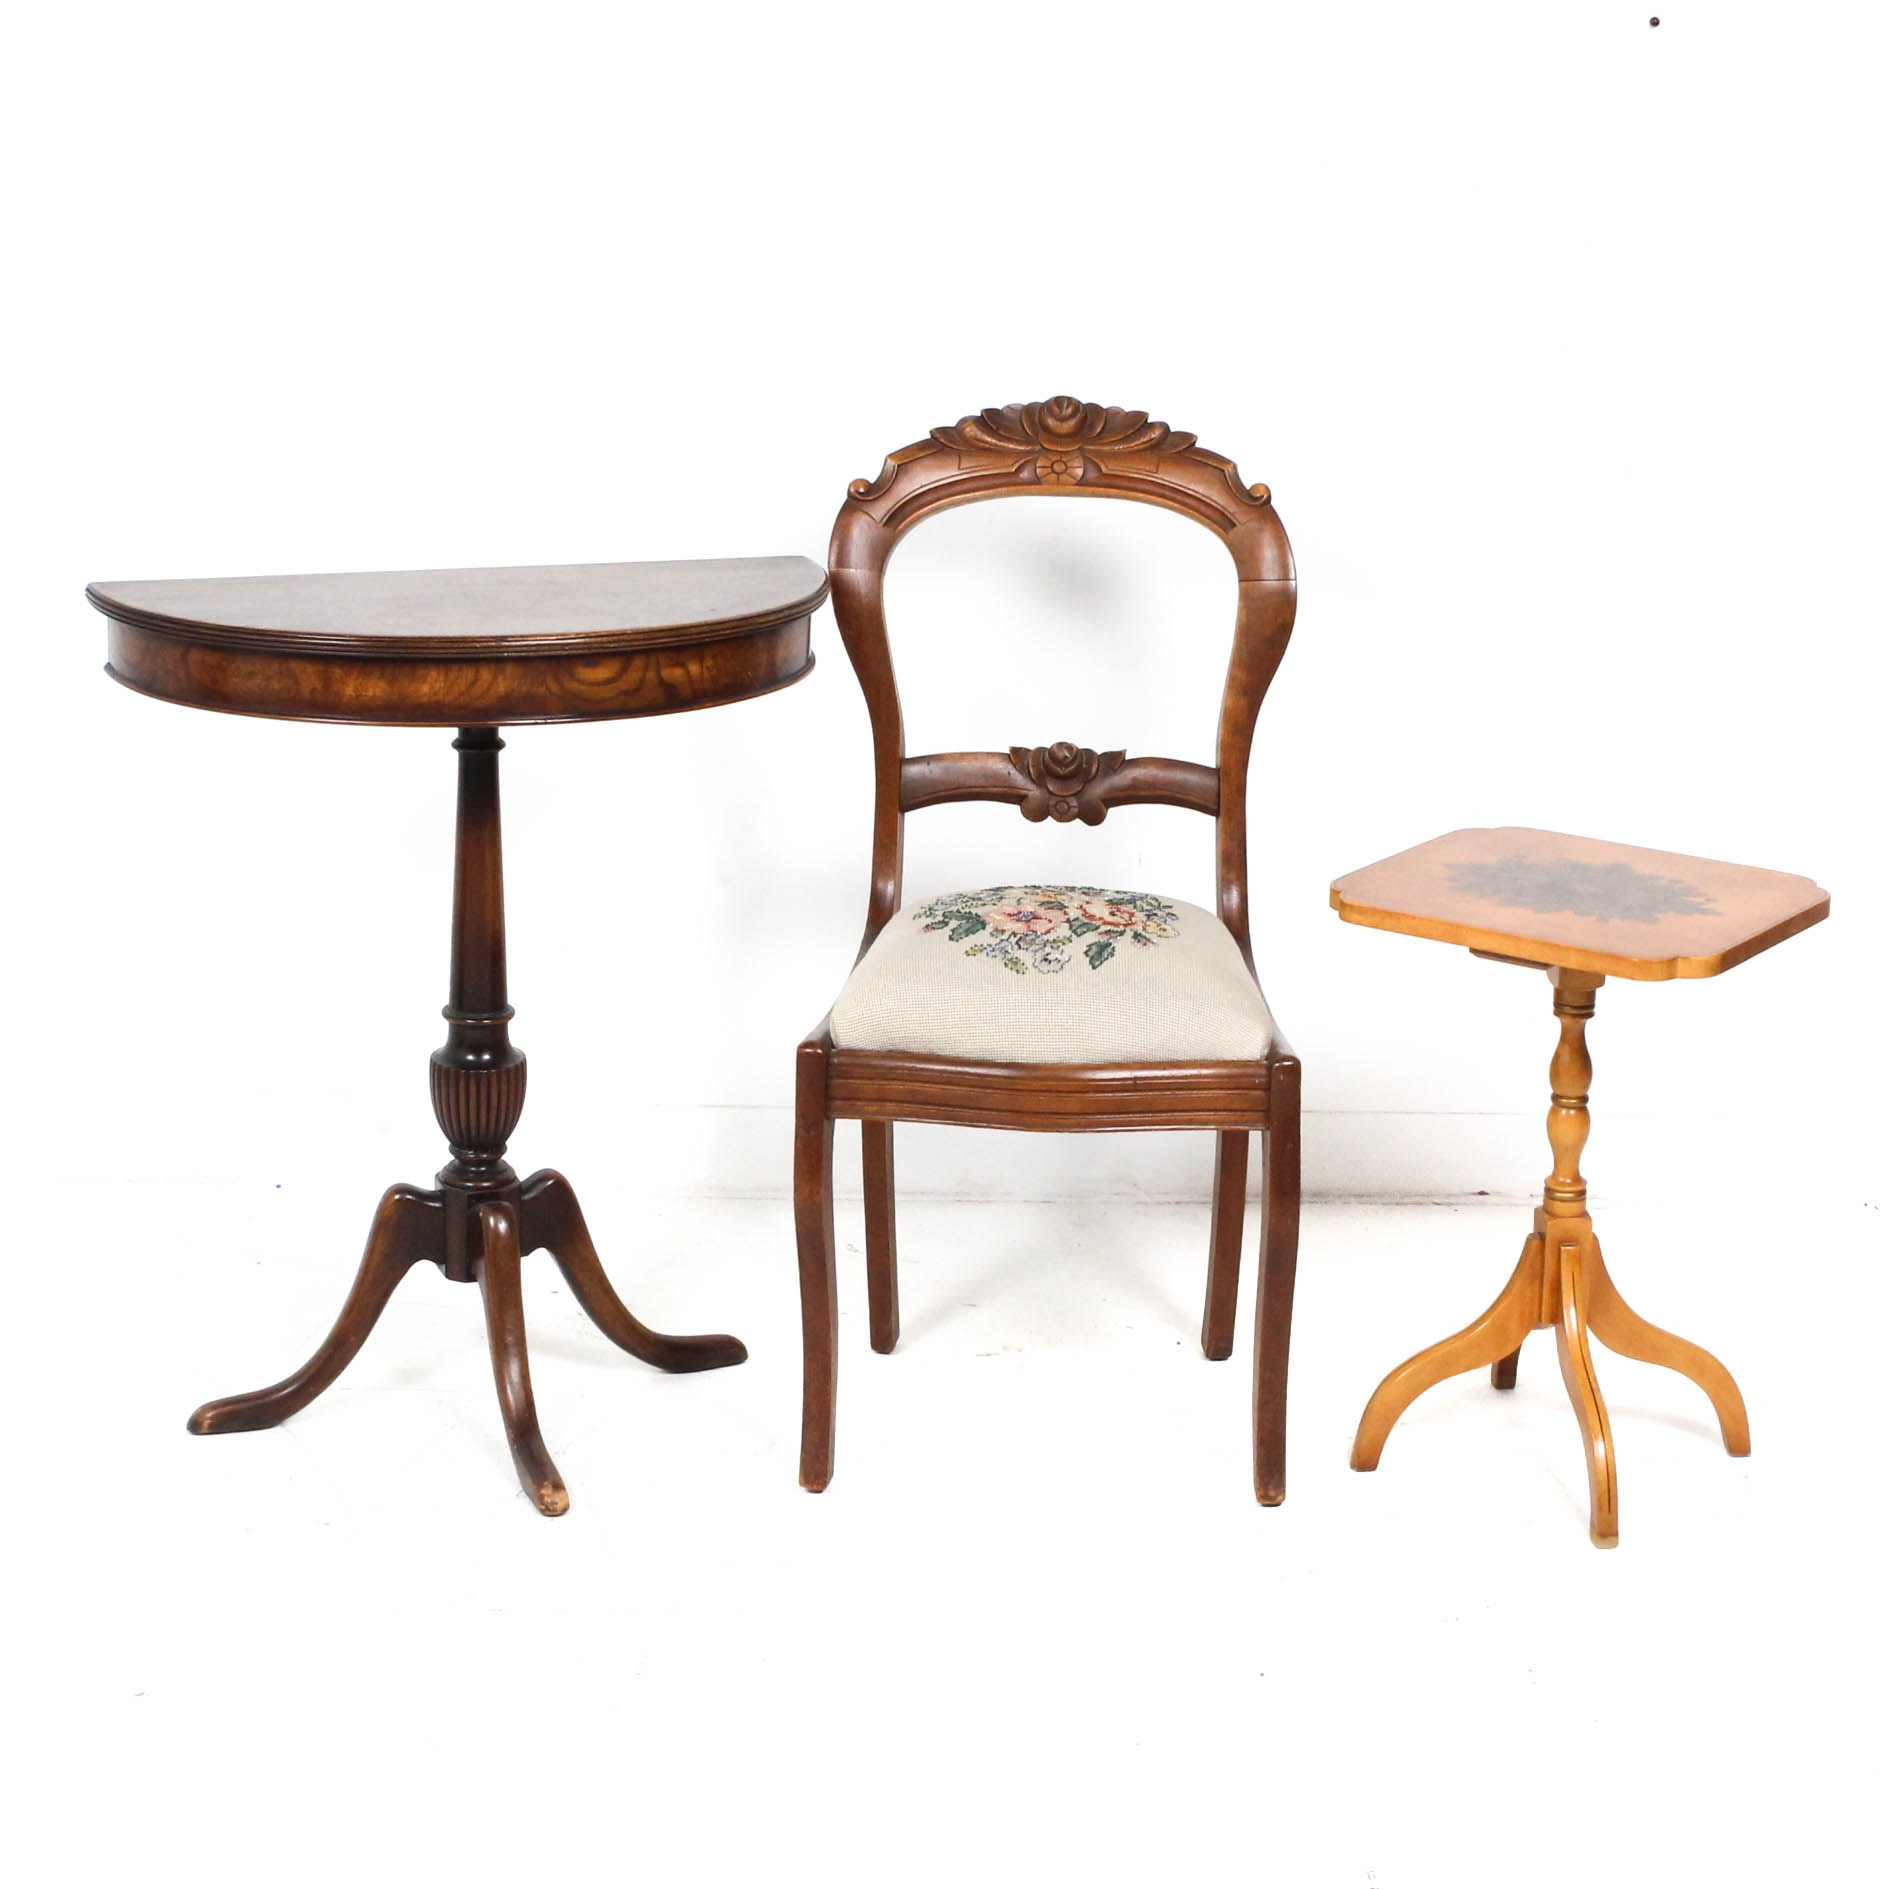 Antique and Vintage Furniture With Hitchcock Accent Table